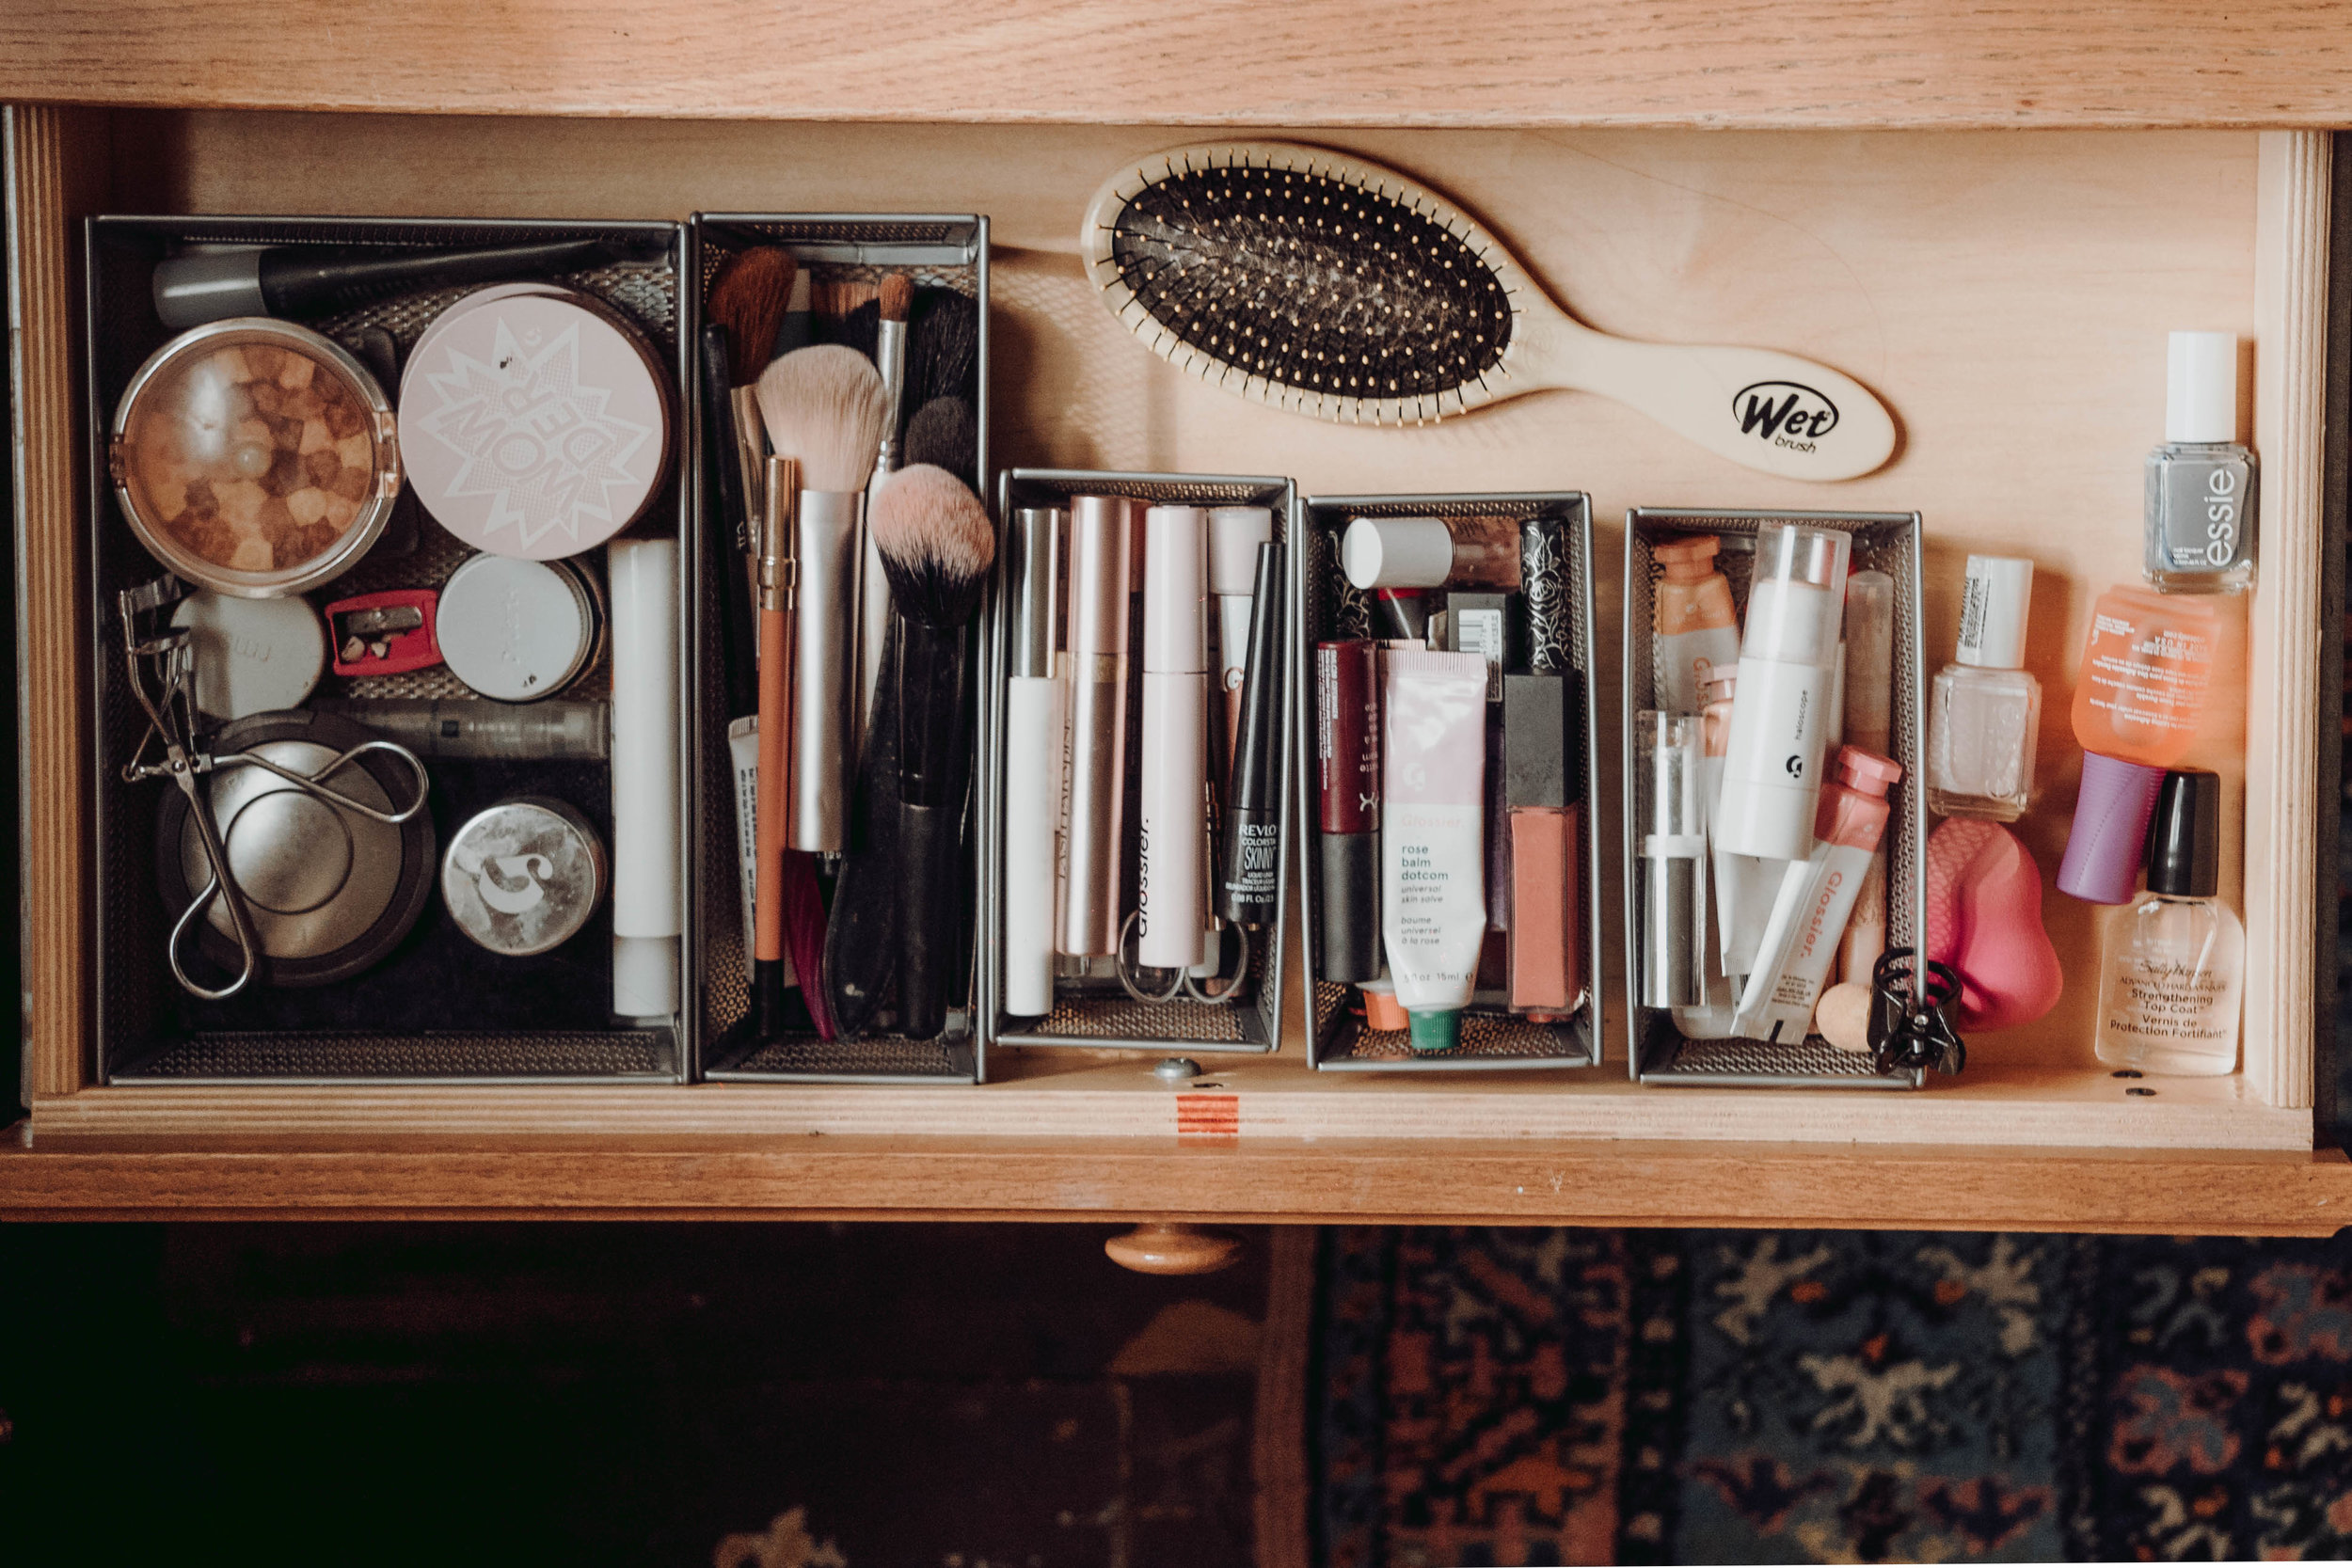 Dorm Drawer - Vol. 1, feat. Quinn Waller, photos by Hannah Benton, compiled by Sadie Hackworth